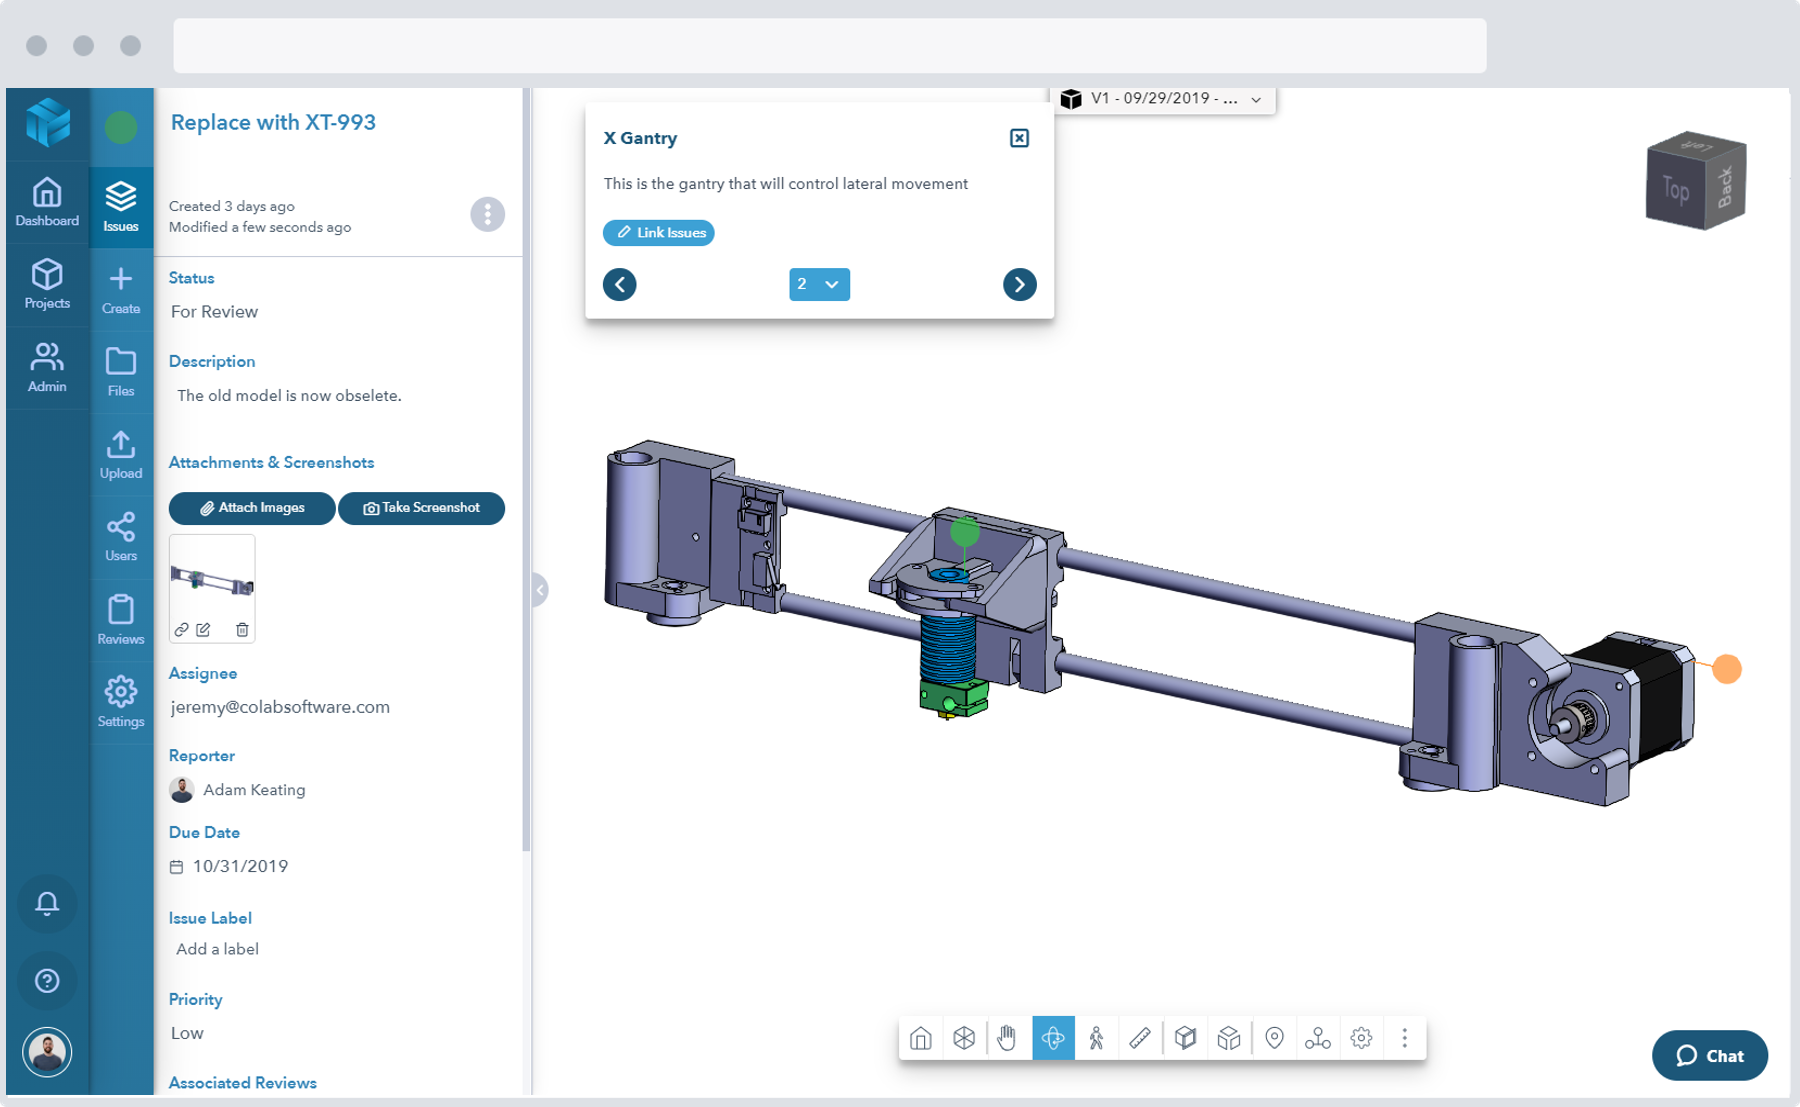 Screenshot of a medical equipment CAD design shared in the 3D viewer of the Gradient design review software